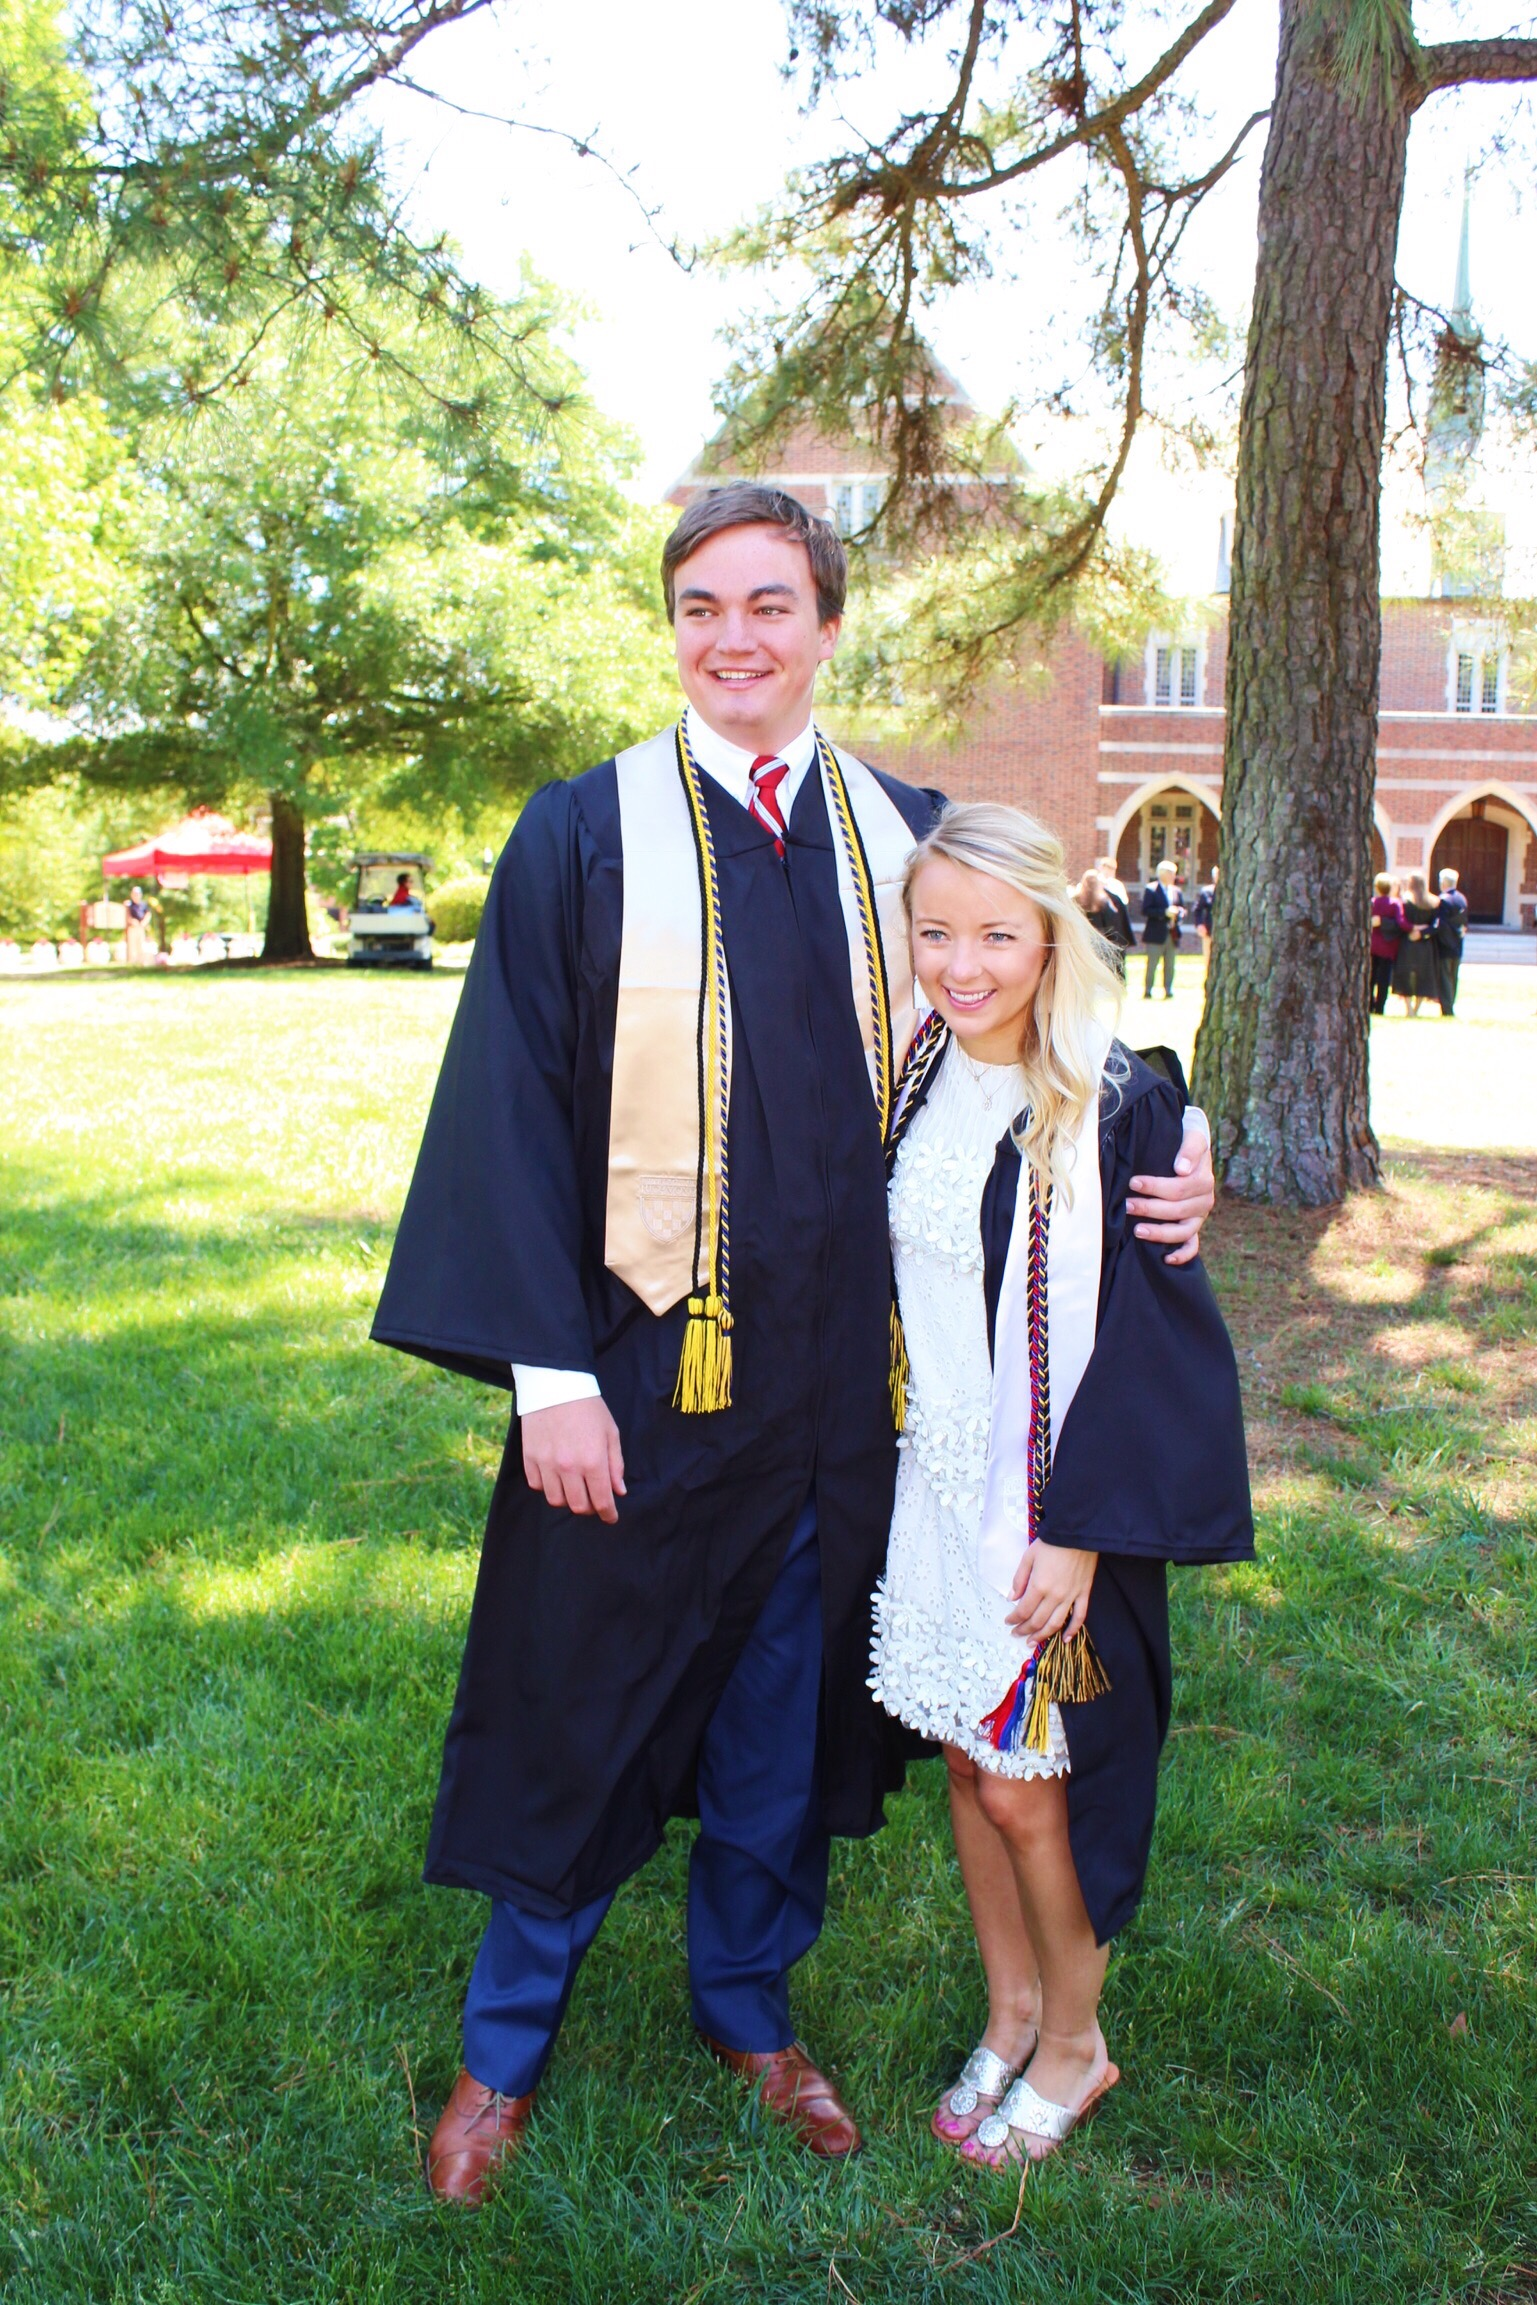 Graduation dress and photos at the University of Richmond